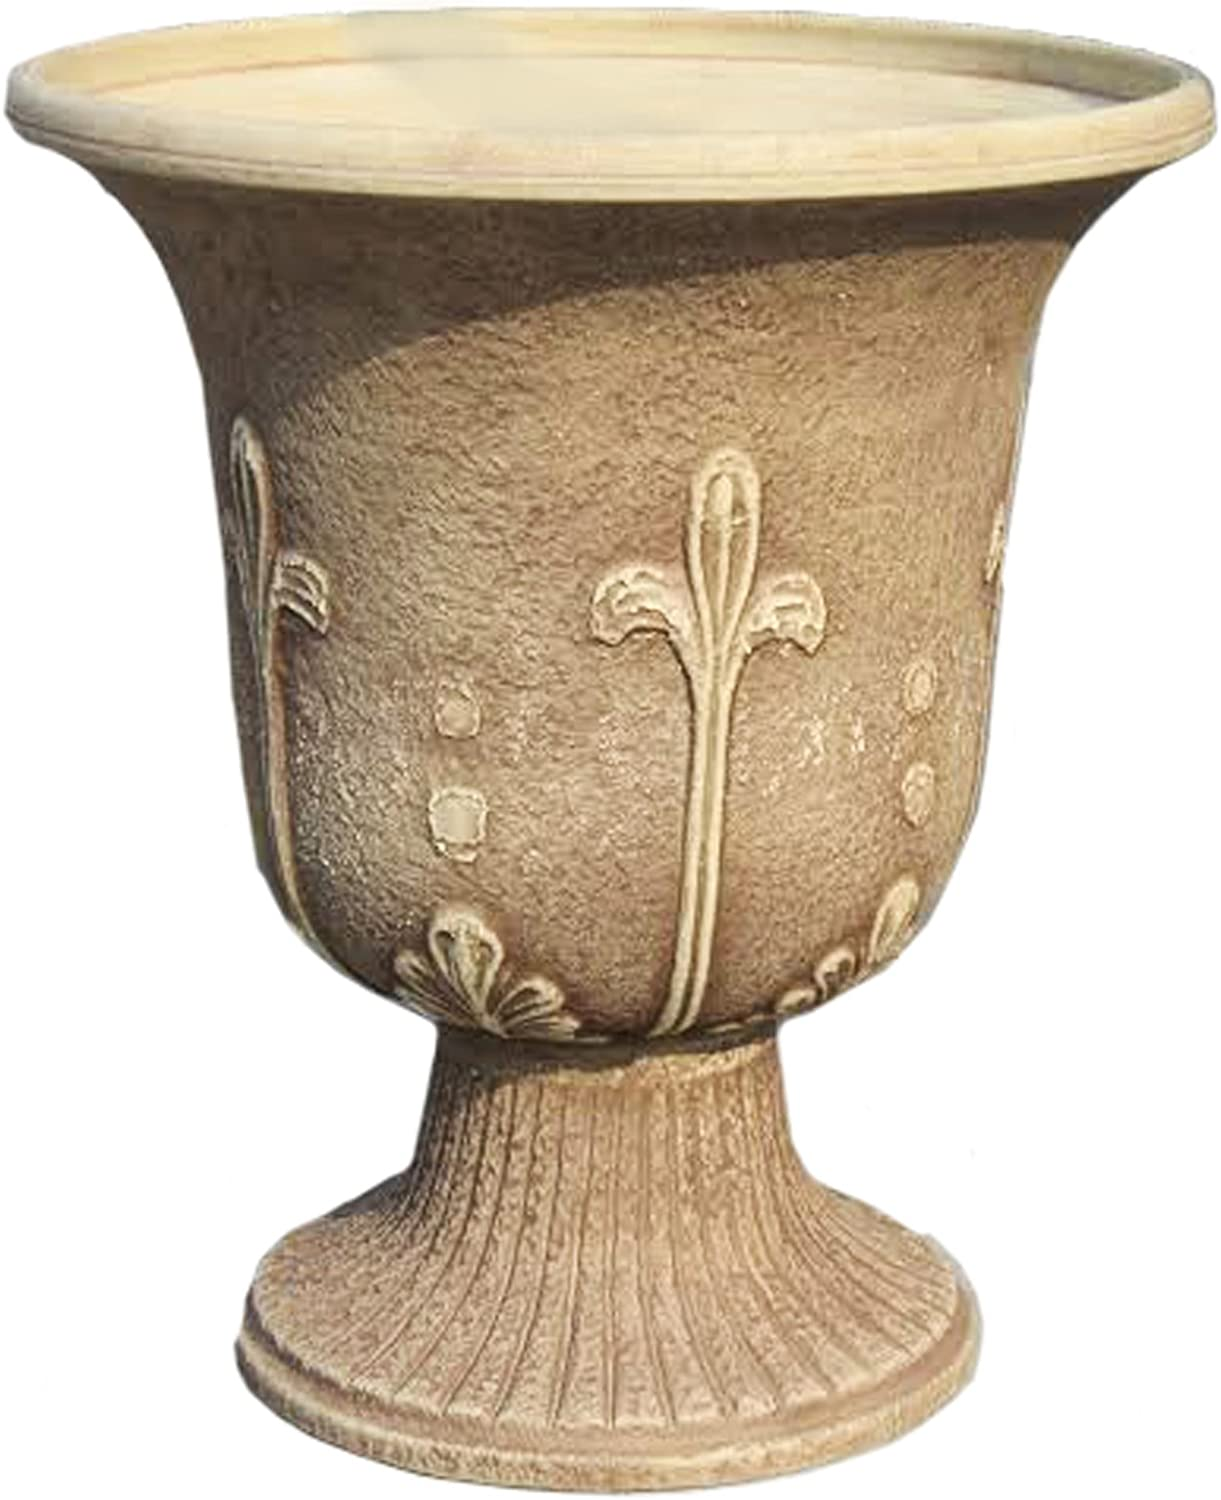 Exaco Trading Co. FM-0071 Sandstone Modena Urn Washed Finish